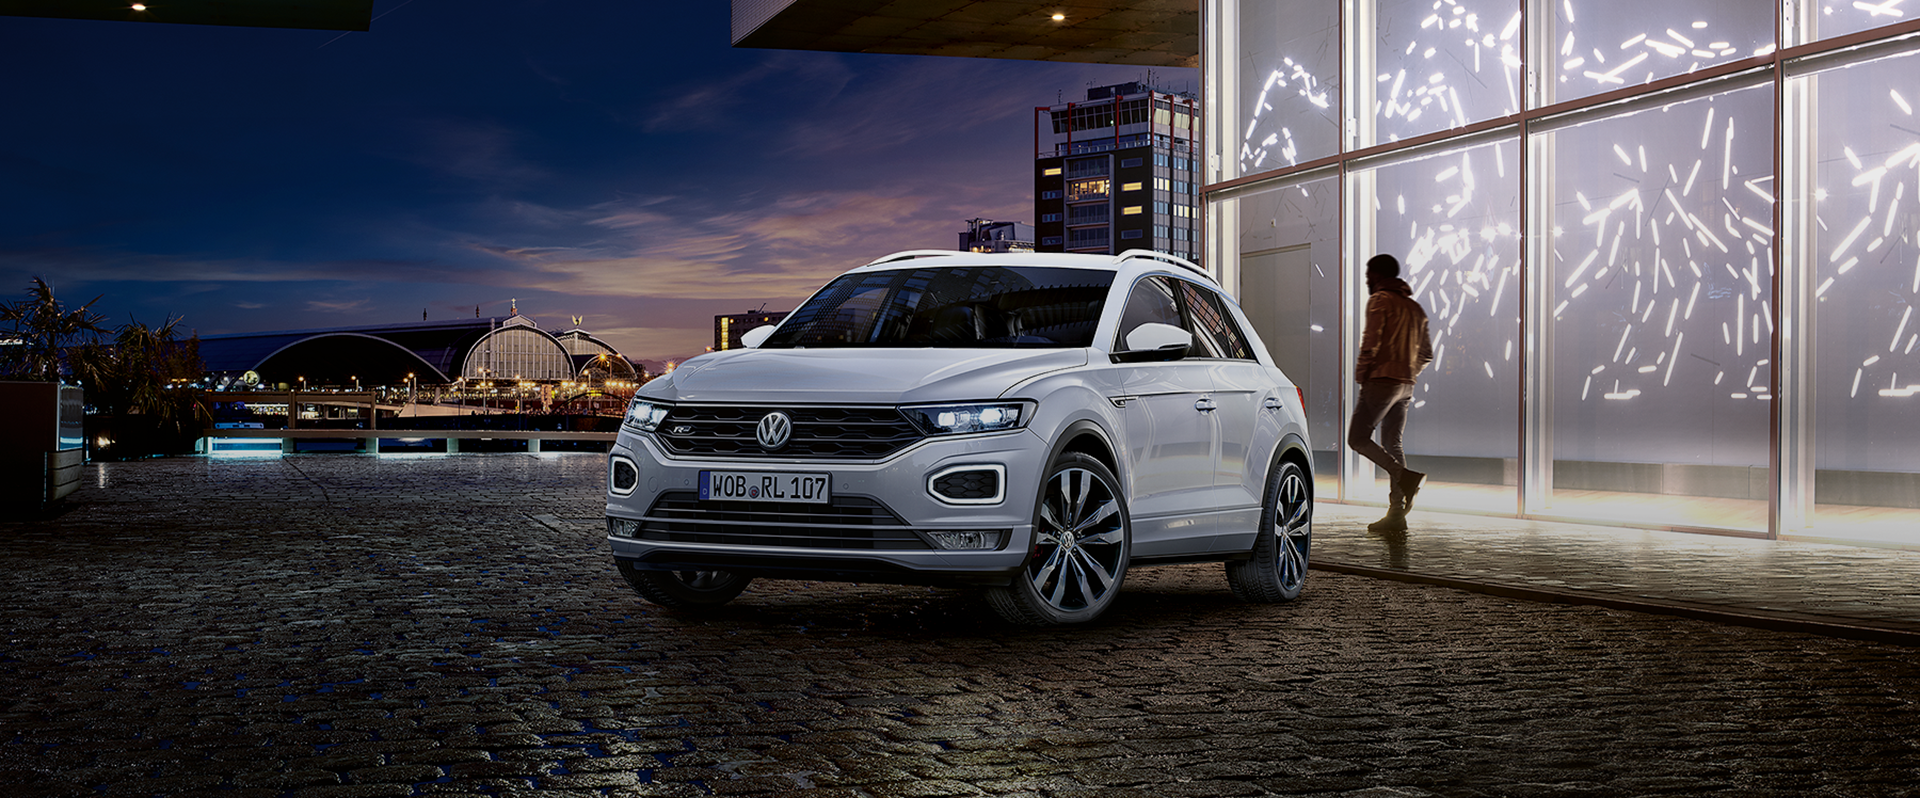 The New T-Roc - Arriving in 2020 to Ringwood Volkswagen